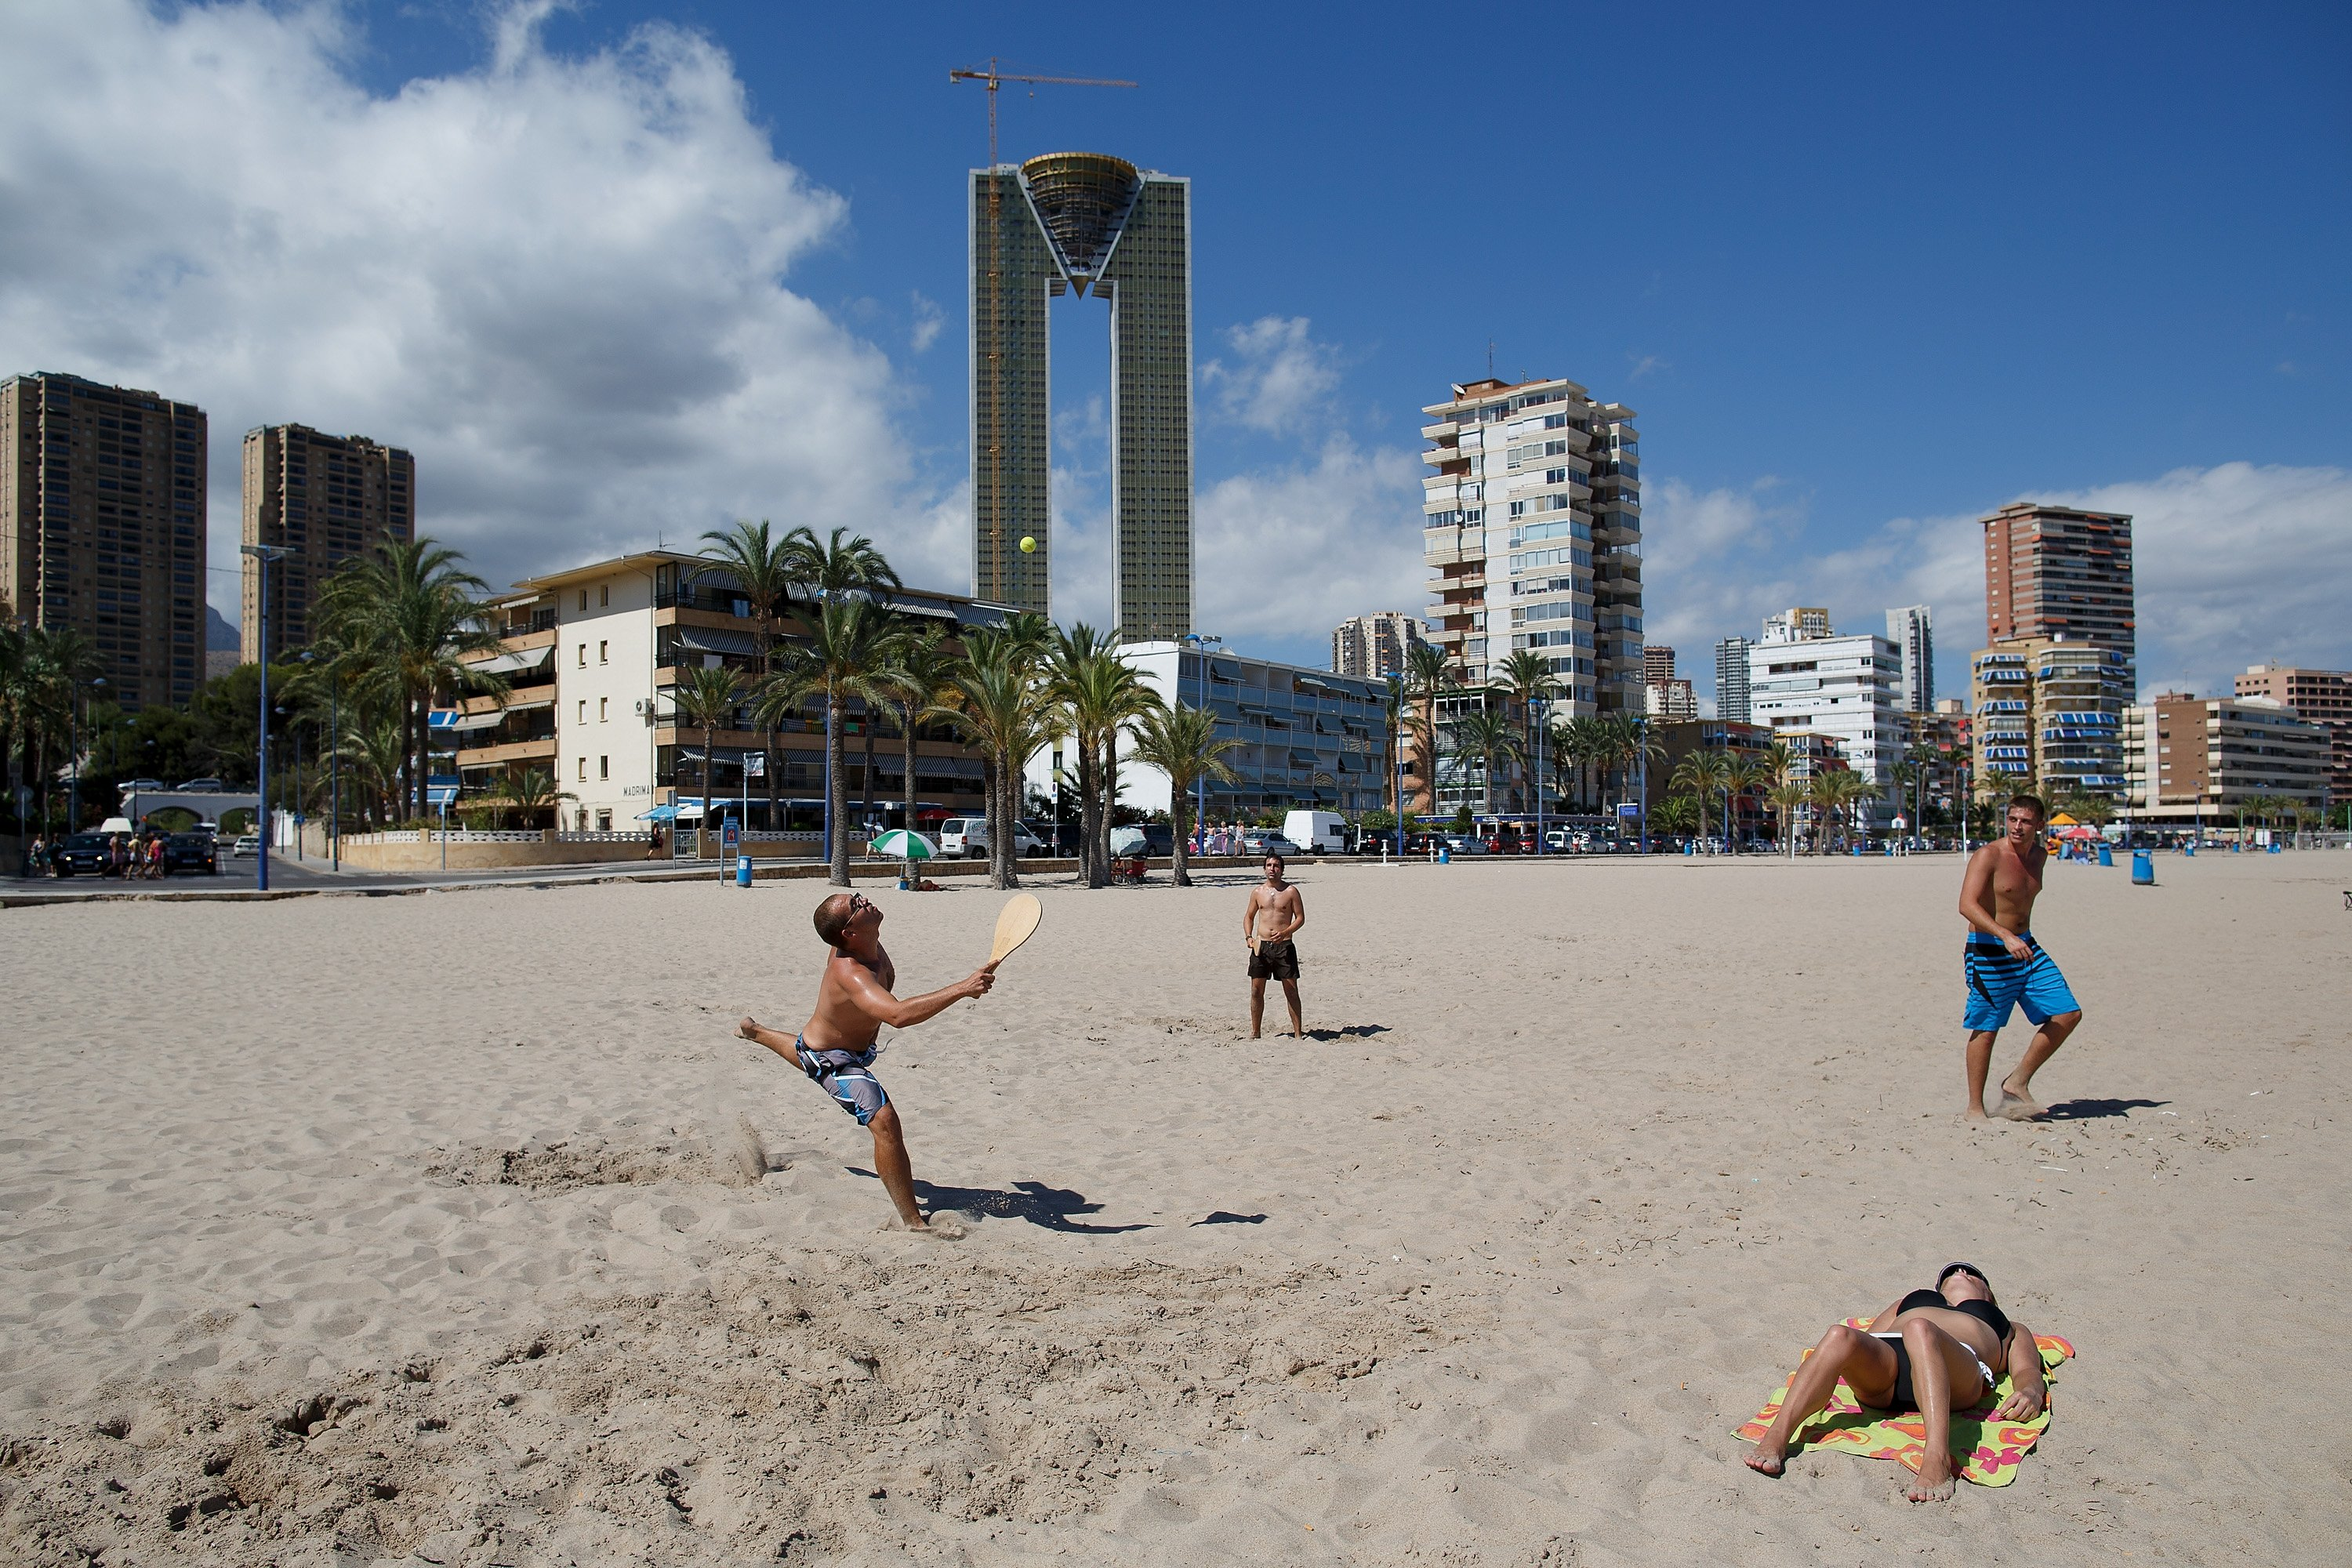 The InTempo Towers In Benidorm Remain Half Built Due To The Faltering Spanish Economy